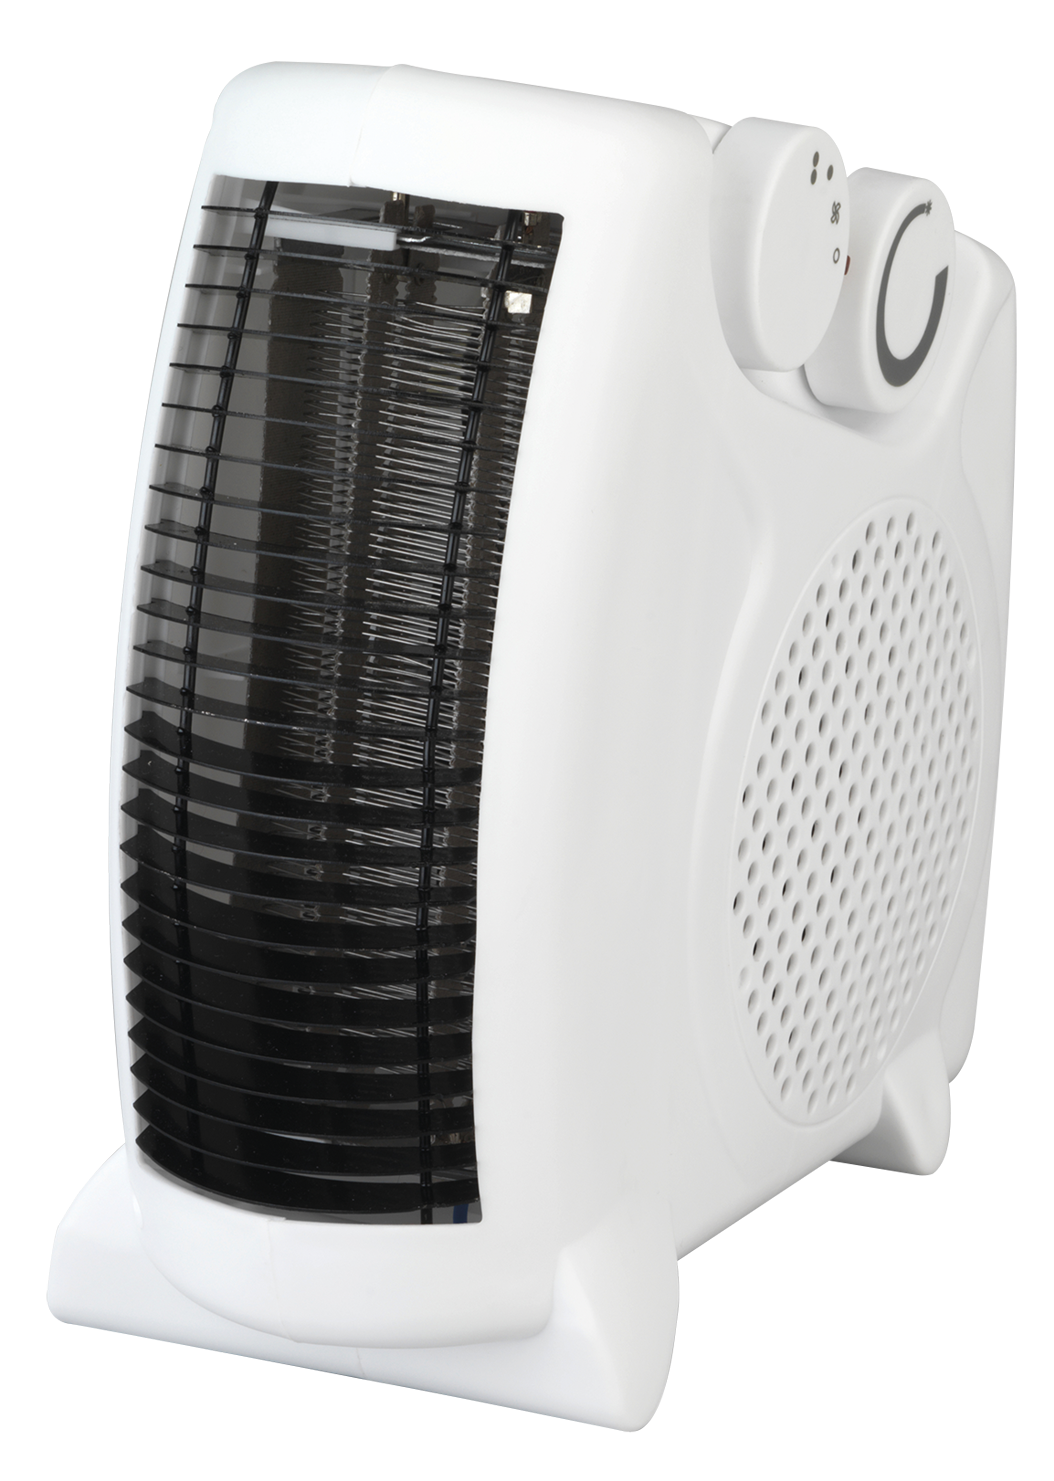 Beldray Flat Fan Heater Heating And Cooling No1brands4you